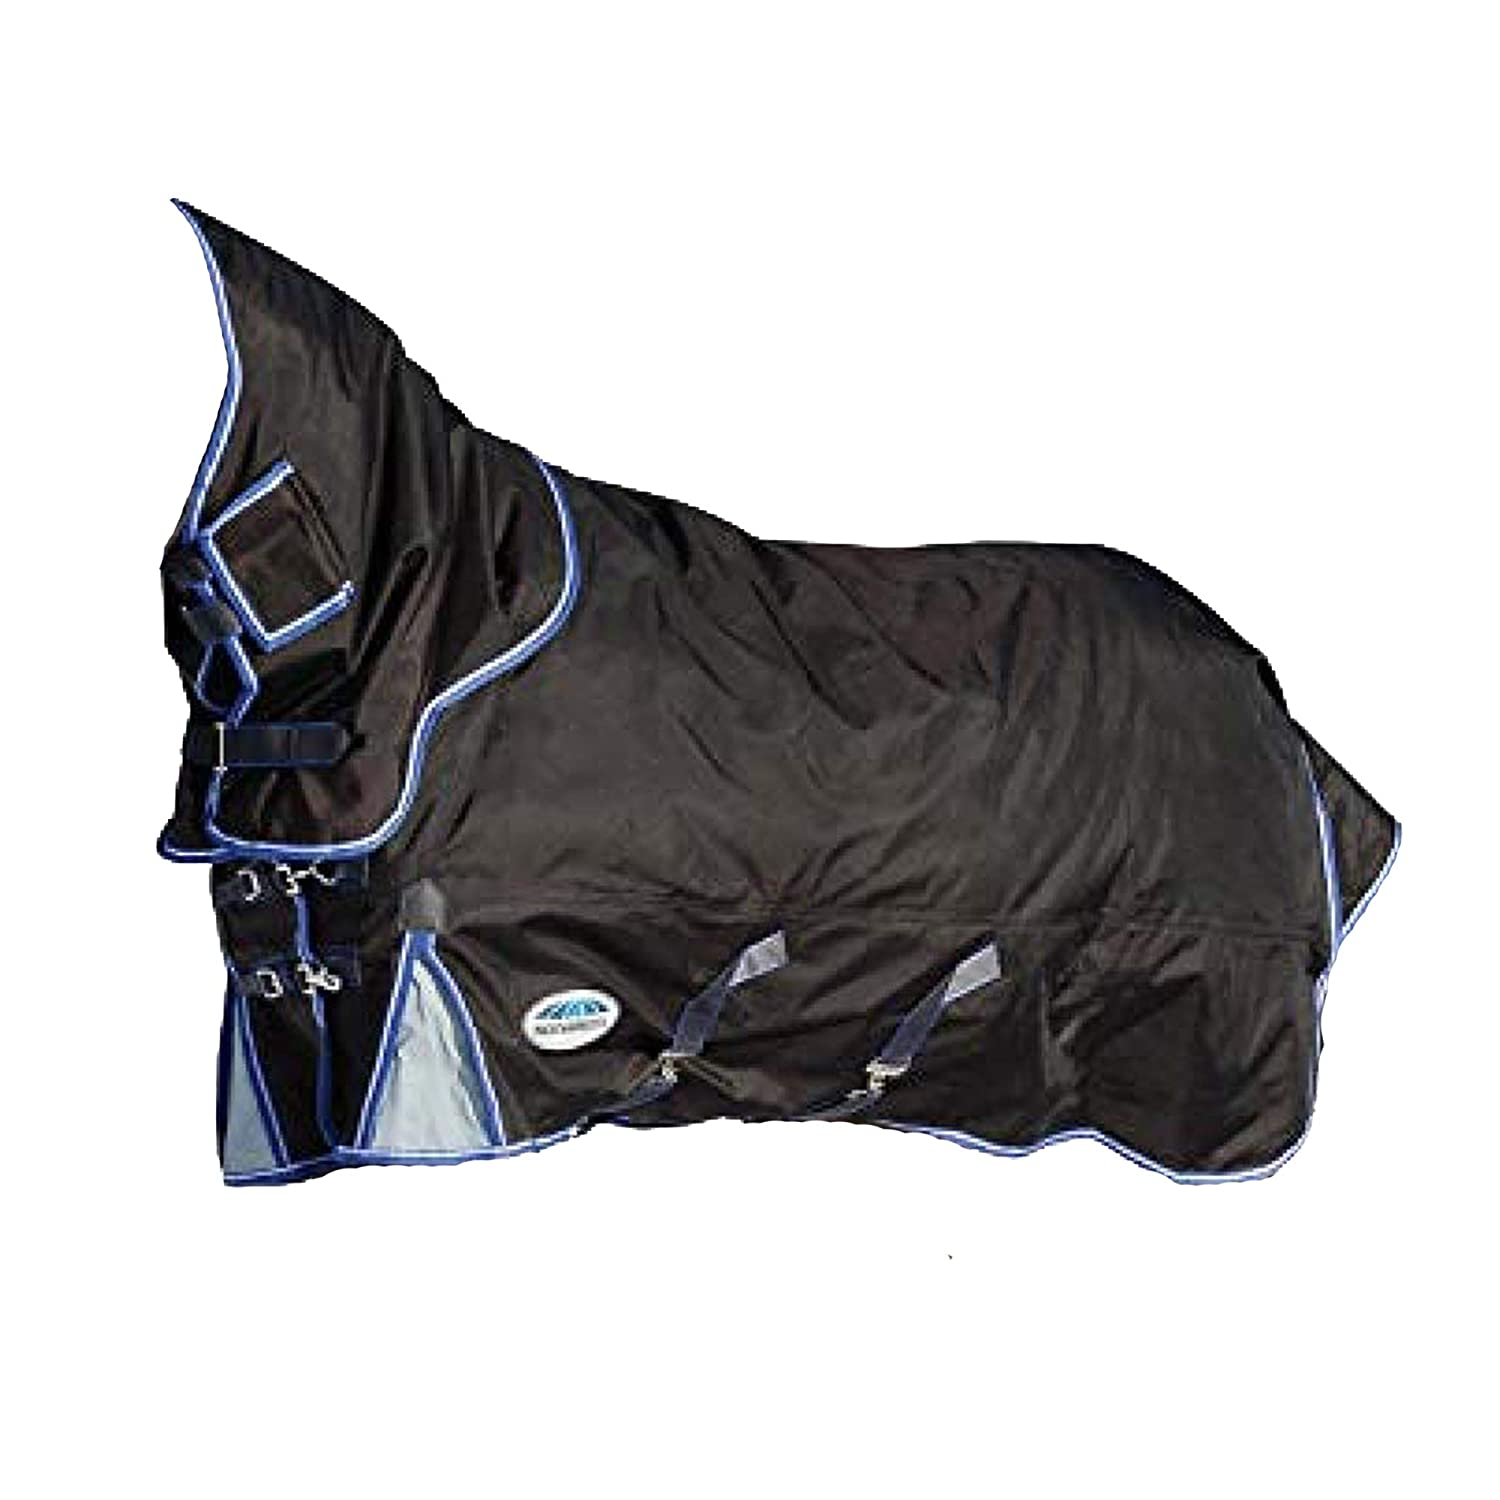 Charcoal bluee White 6 ft 6 Charcoal bluee White 6 ft 6 Weatherbeeta Comfitec Heavy Ultra Cozi Detach-a-neck Turnout Rug